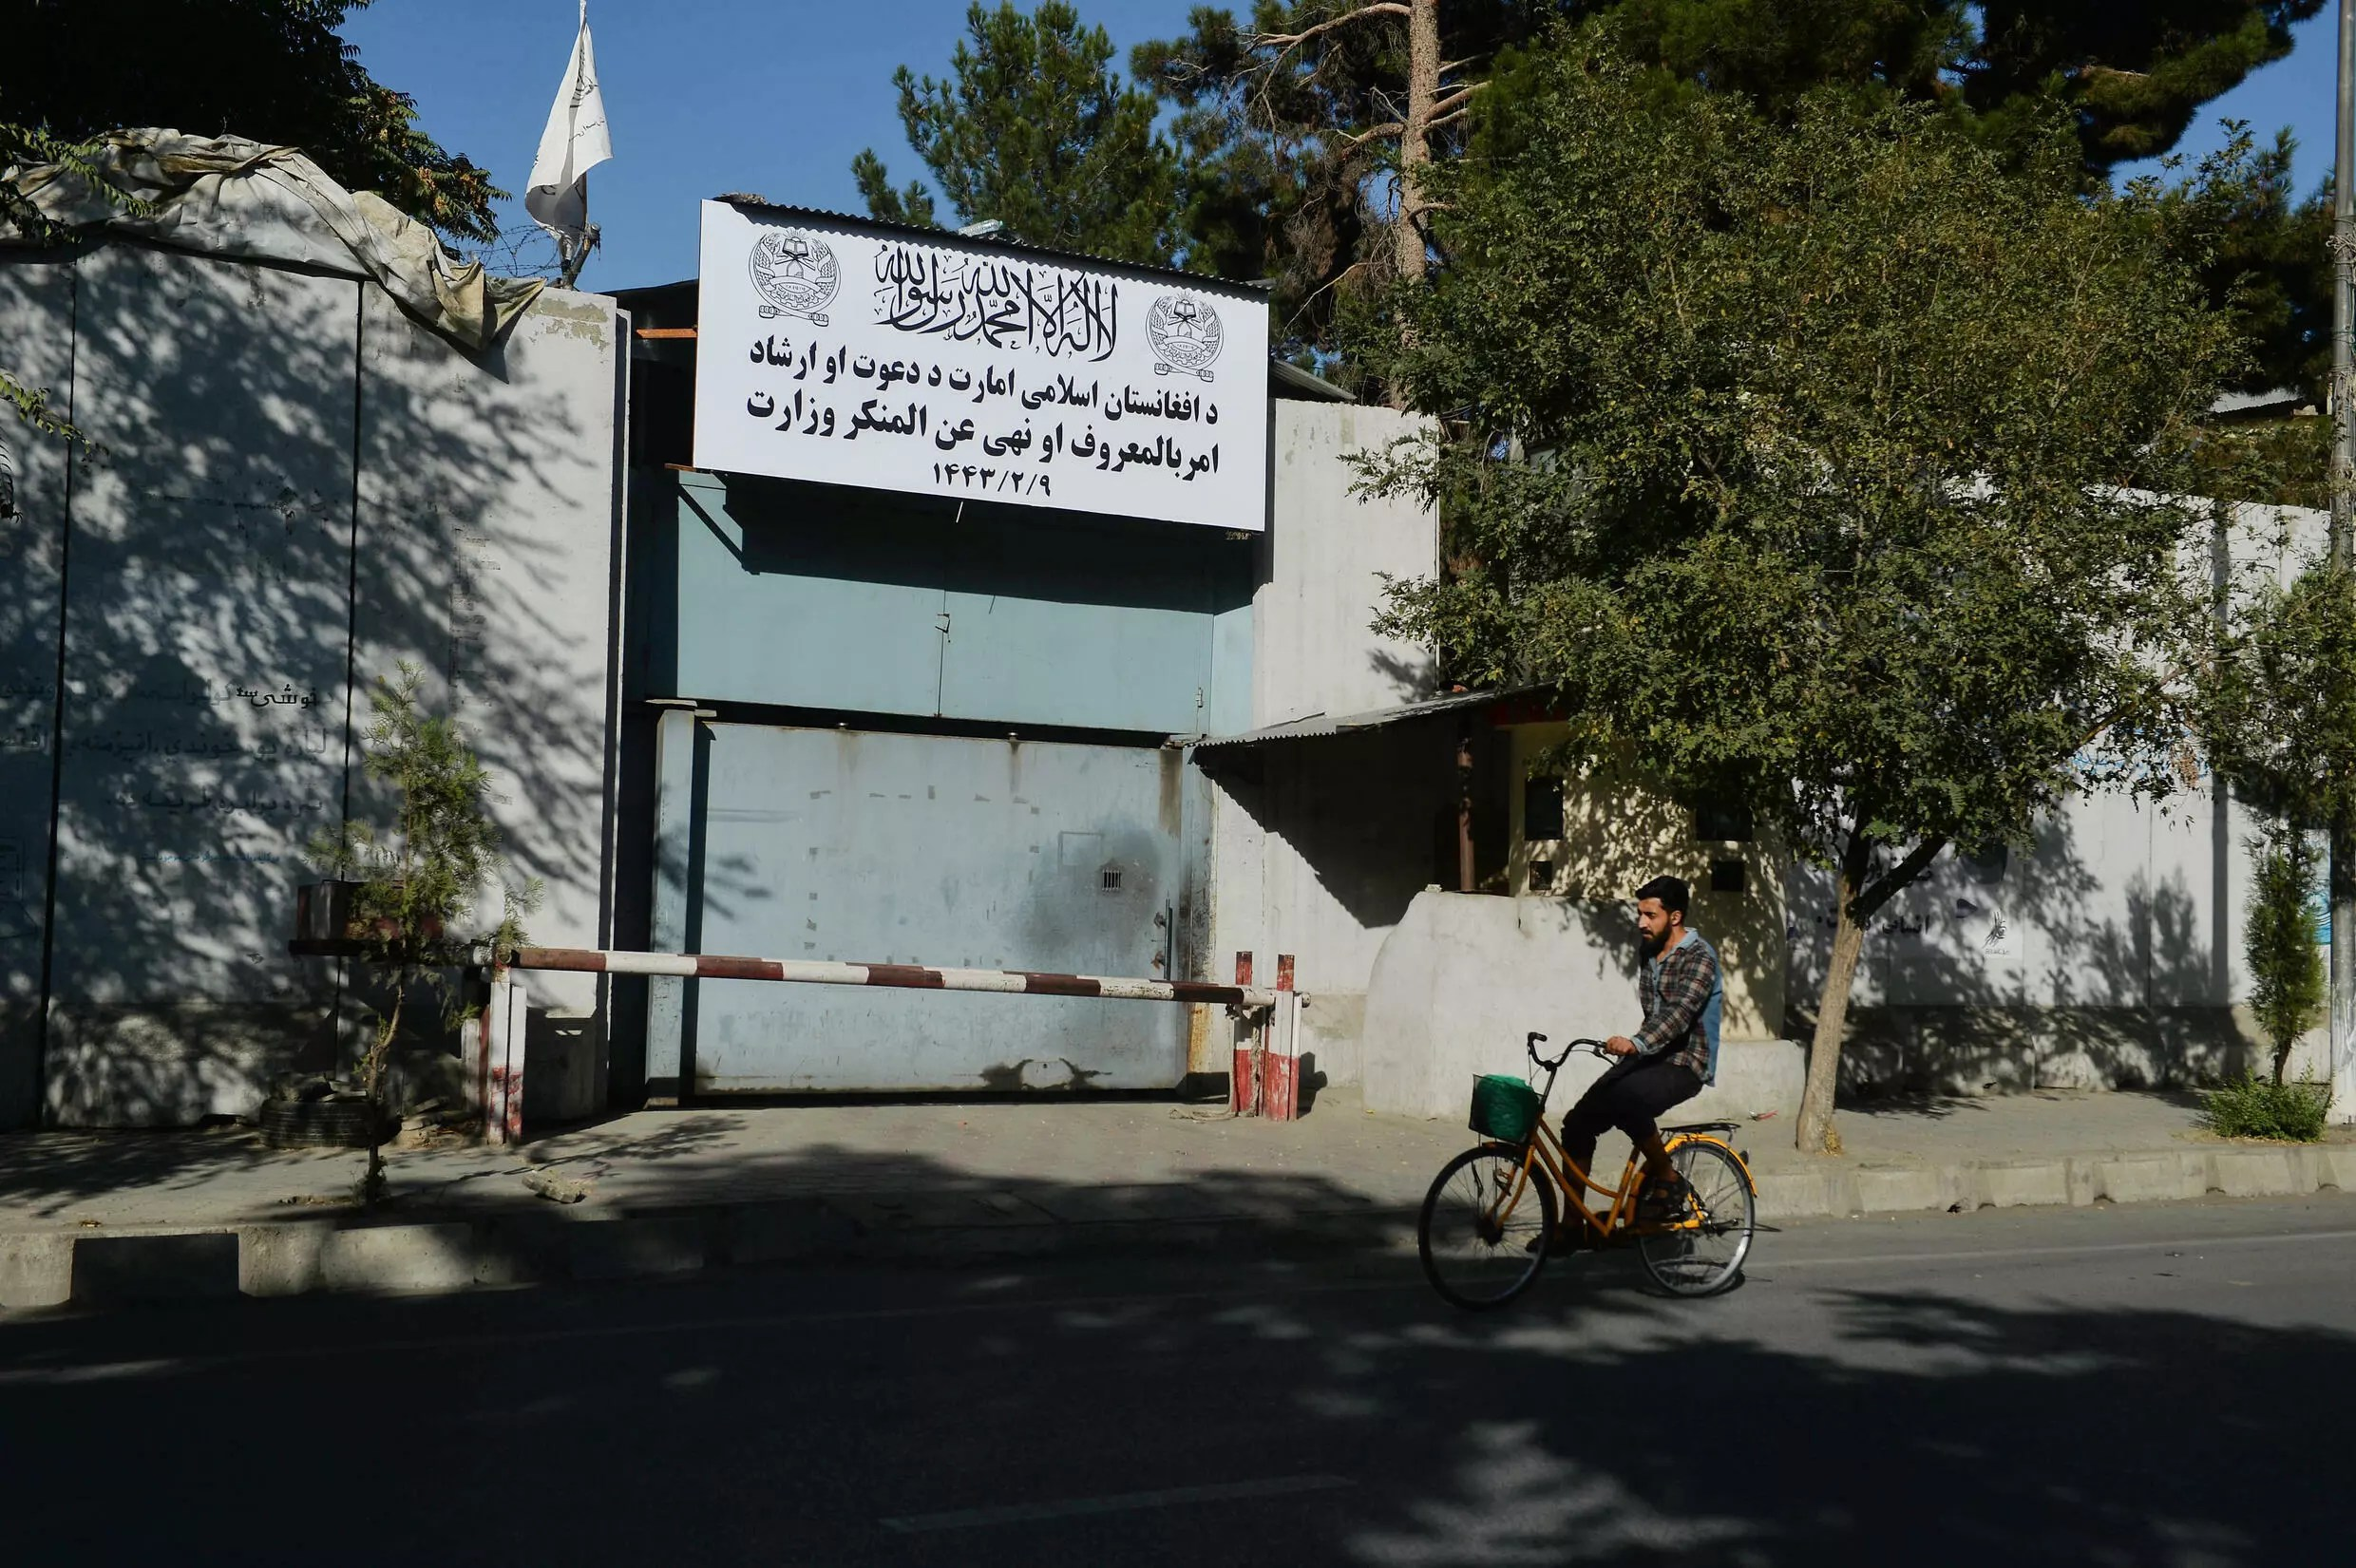 The Taliban appear to have shut down the government's ministry of women's affairs and replaced it with the Ministry for the Promotion of Virtue and Prevention of Vice